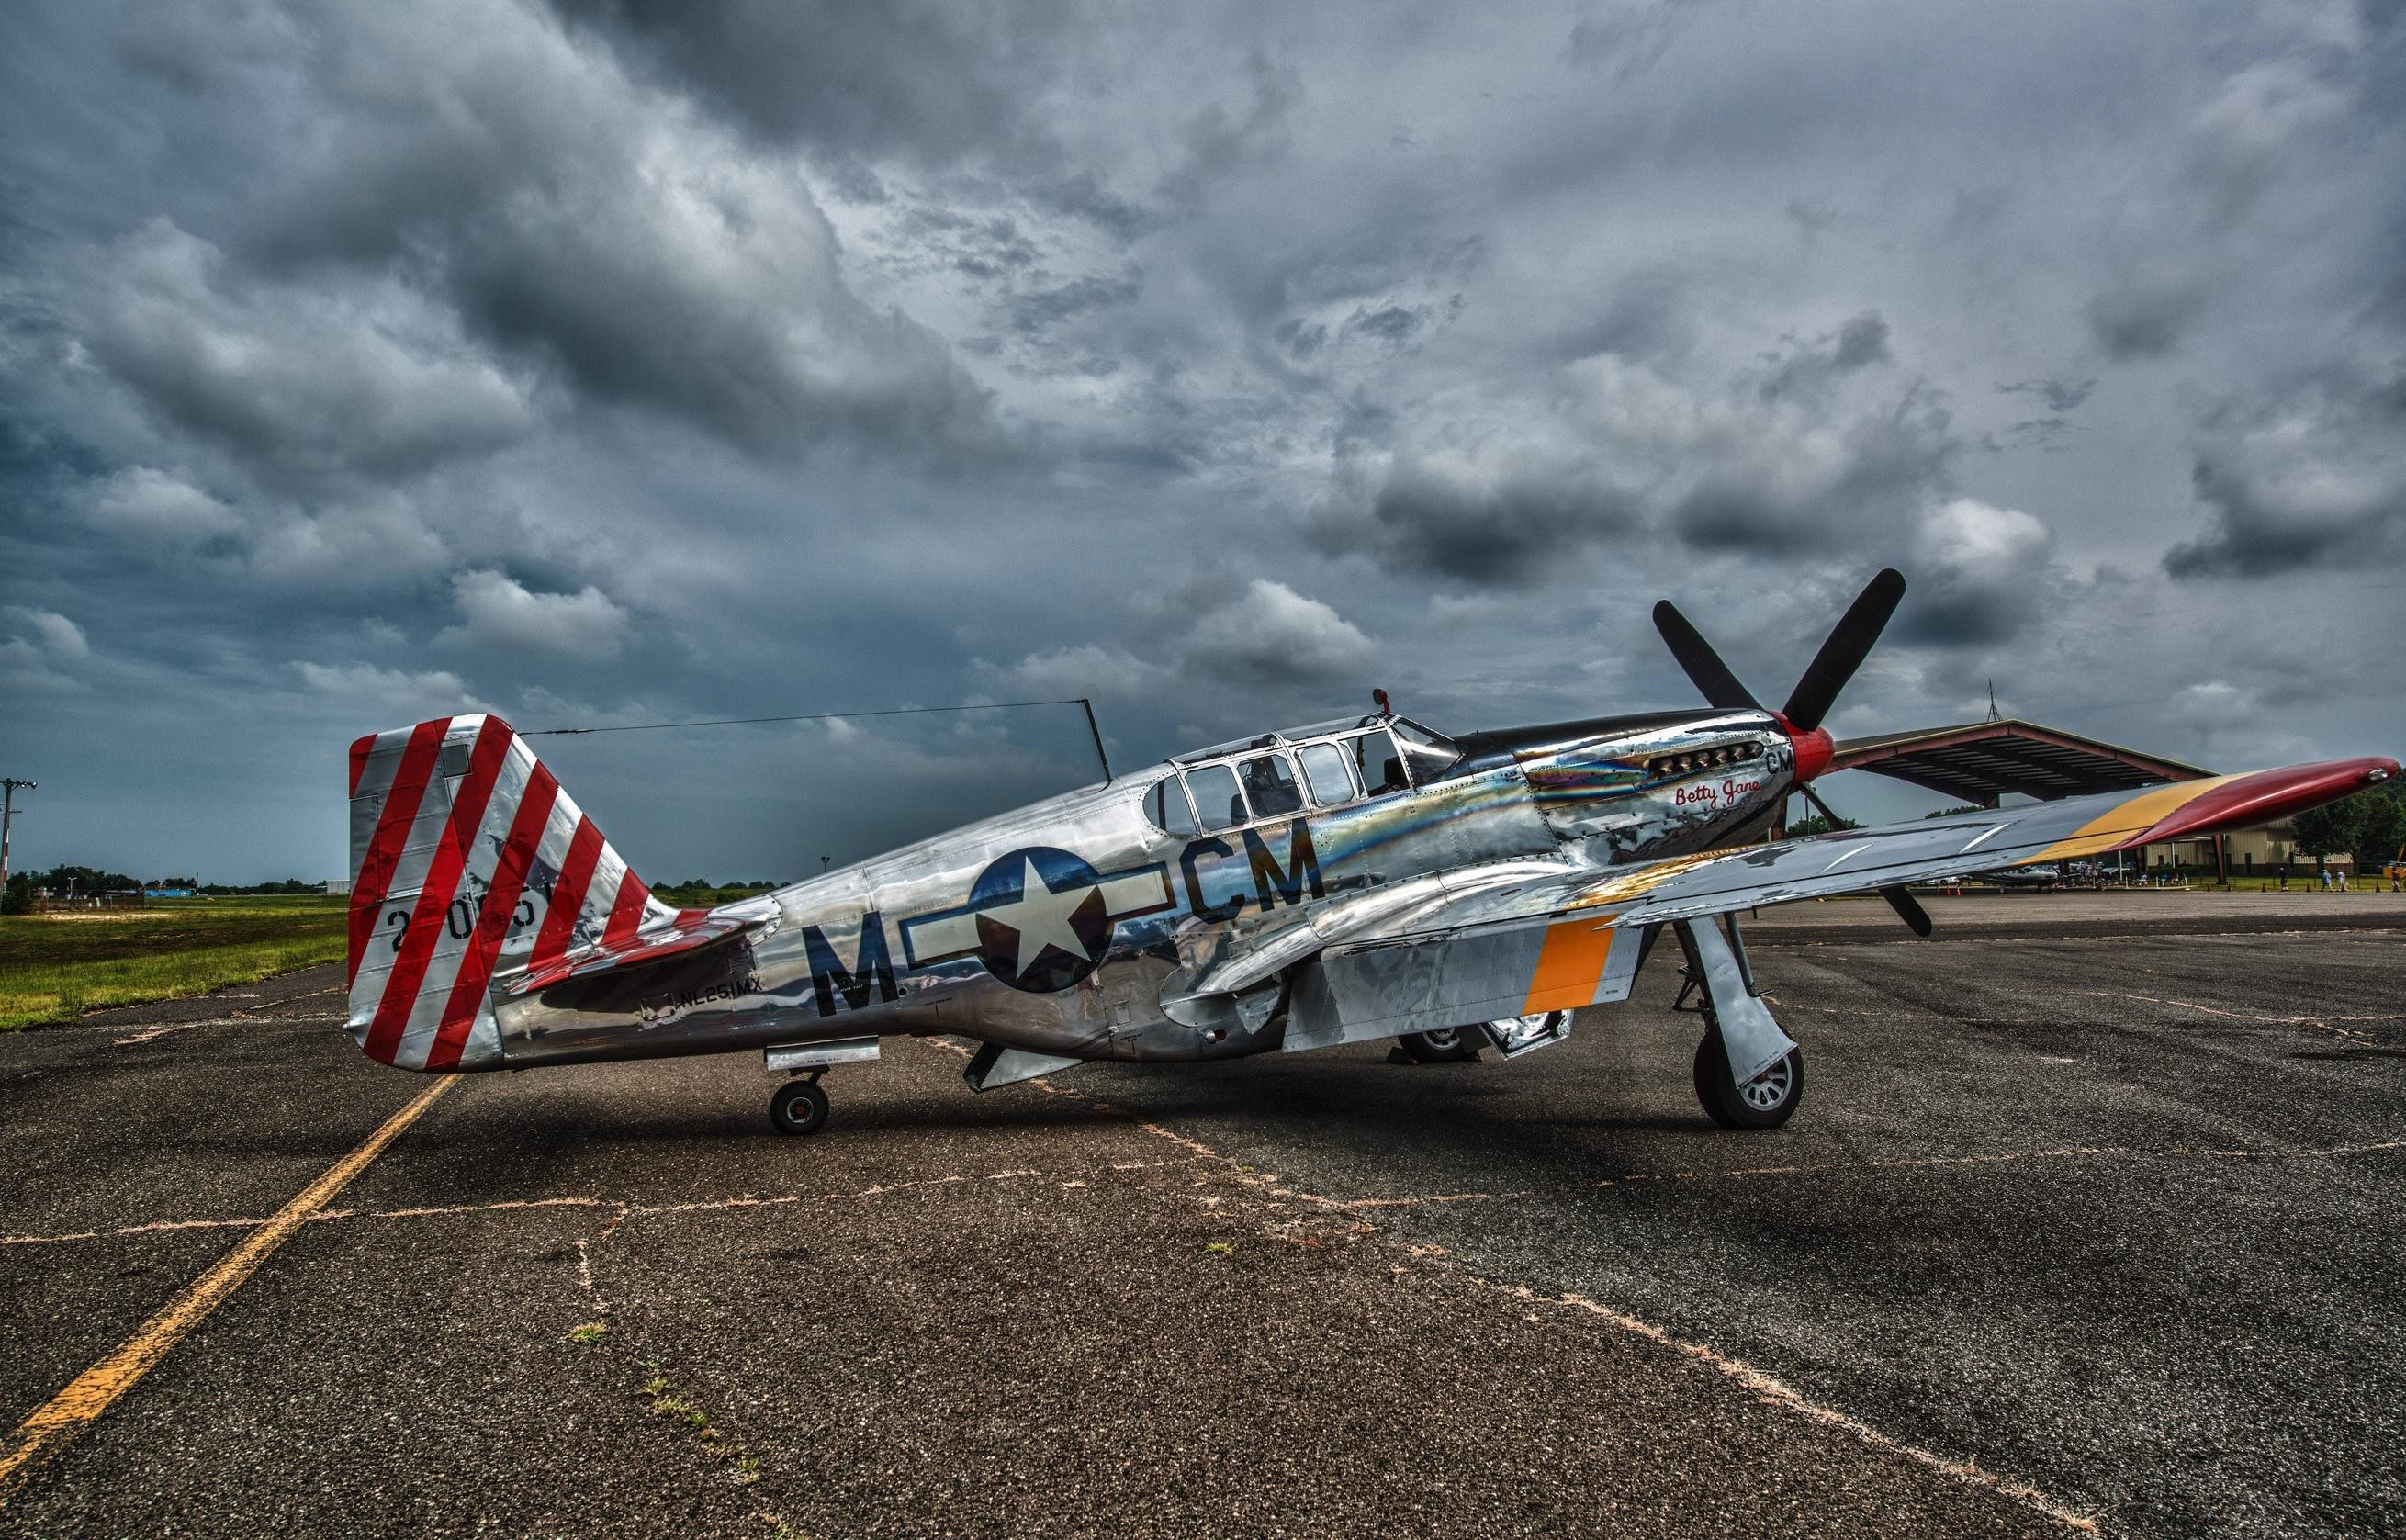 2620x1677 Vintage Airplane Wallpapers | Vintage Military Aircraft Pictures .